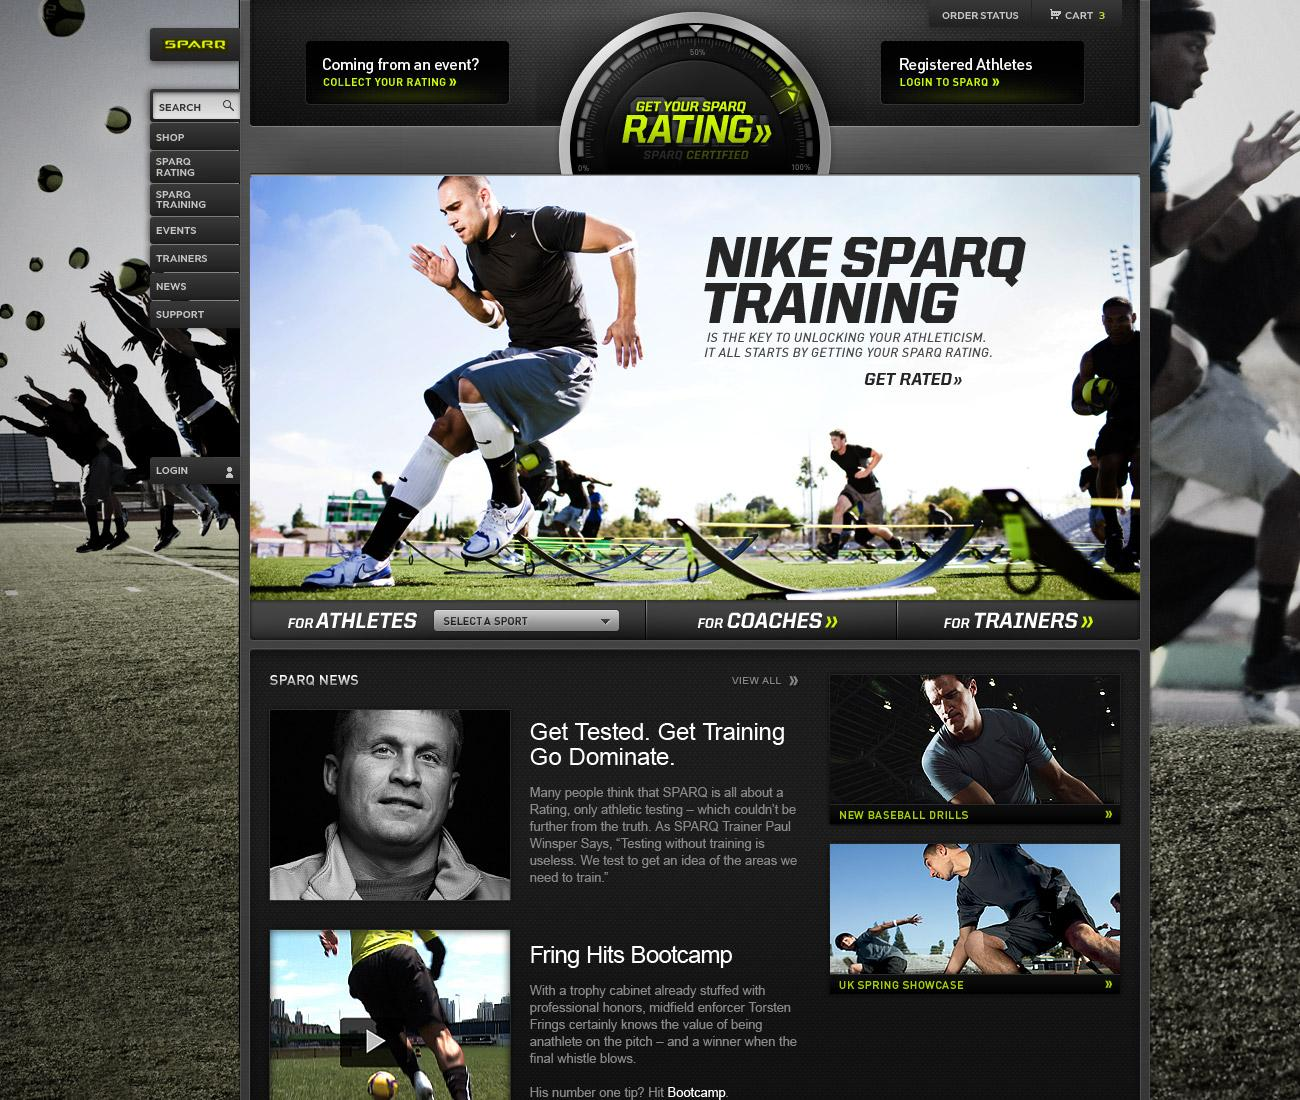 01_SPARQ_Homepage_LoggedOut.jpg (1300×1100)